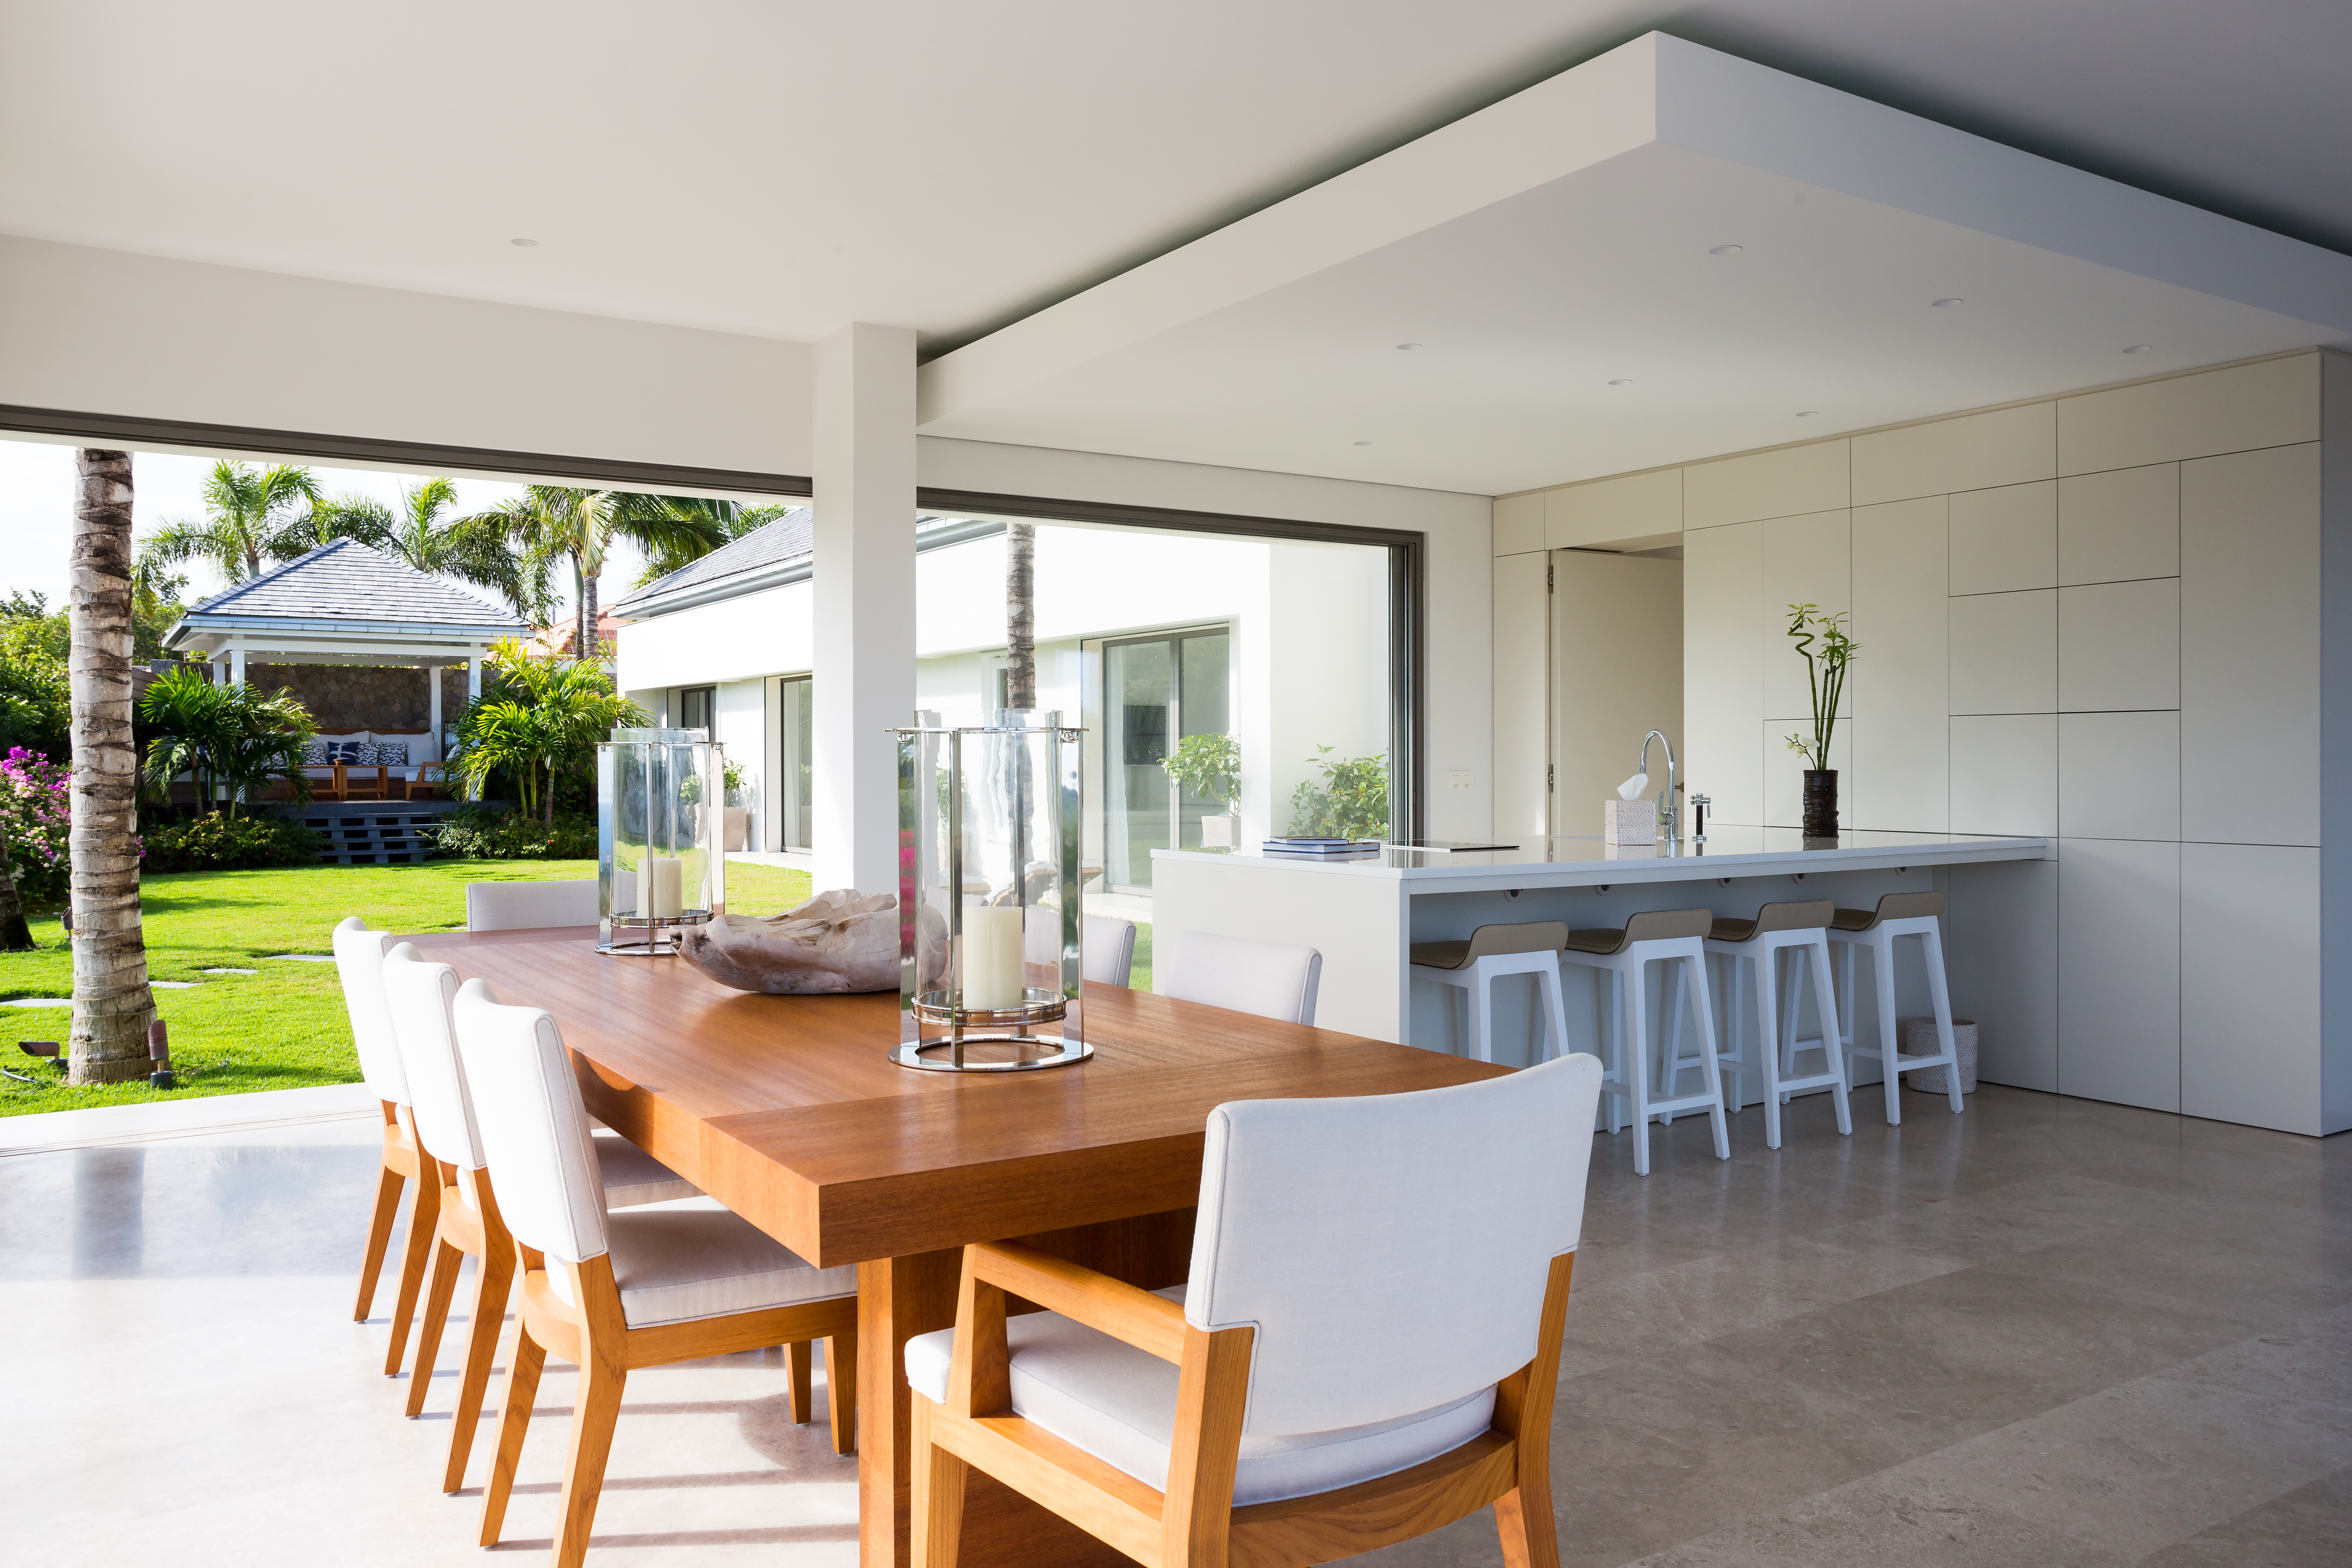 Modern Hurricane Lamp For Contemporary Open Dining Room (View 12 of 13)